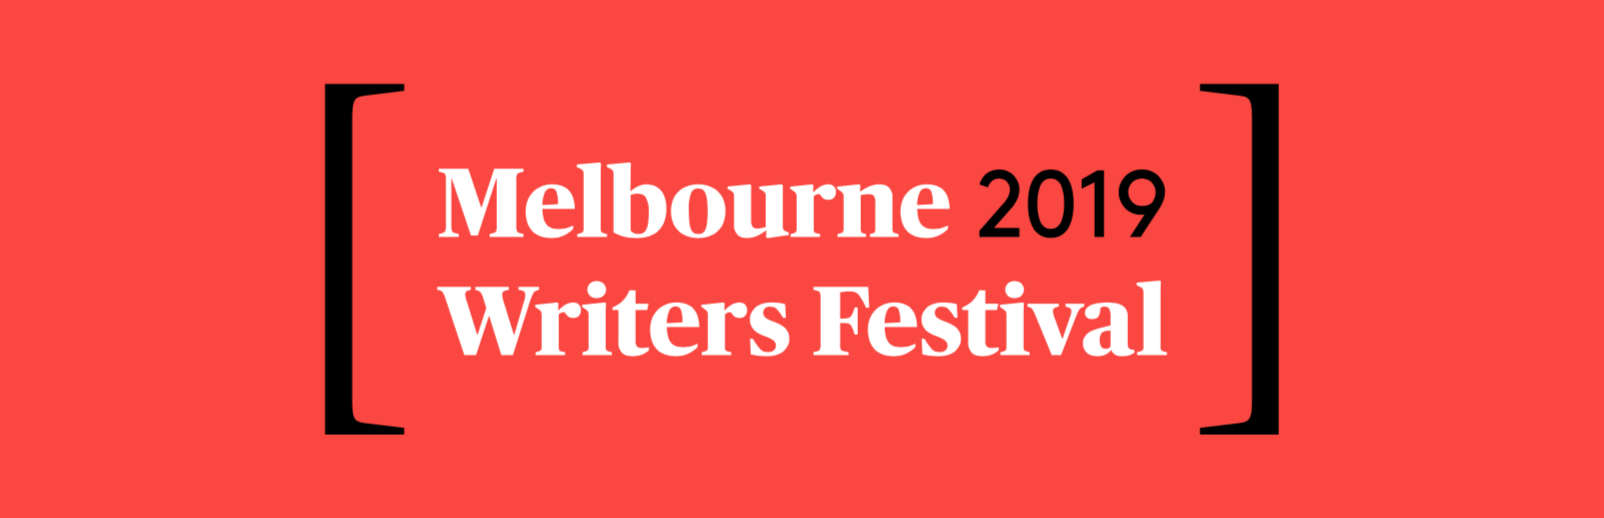 girledworld Melbourne Writers Festival.png